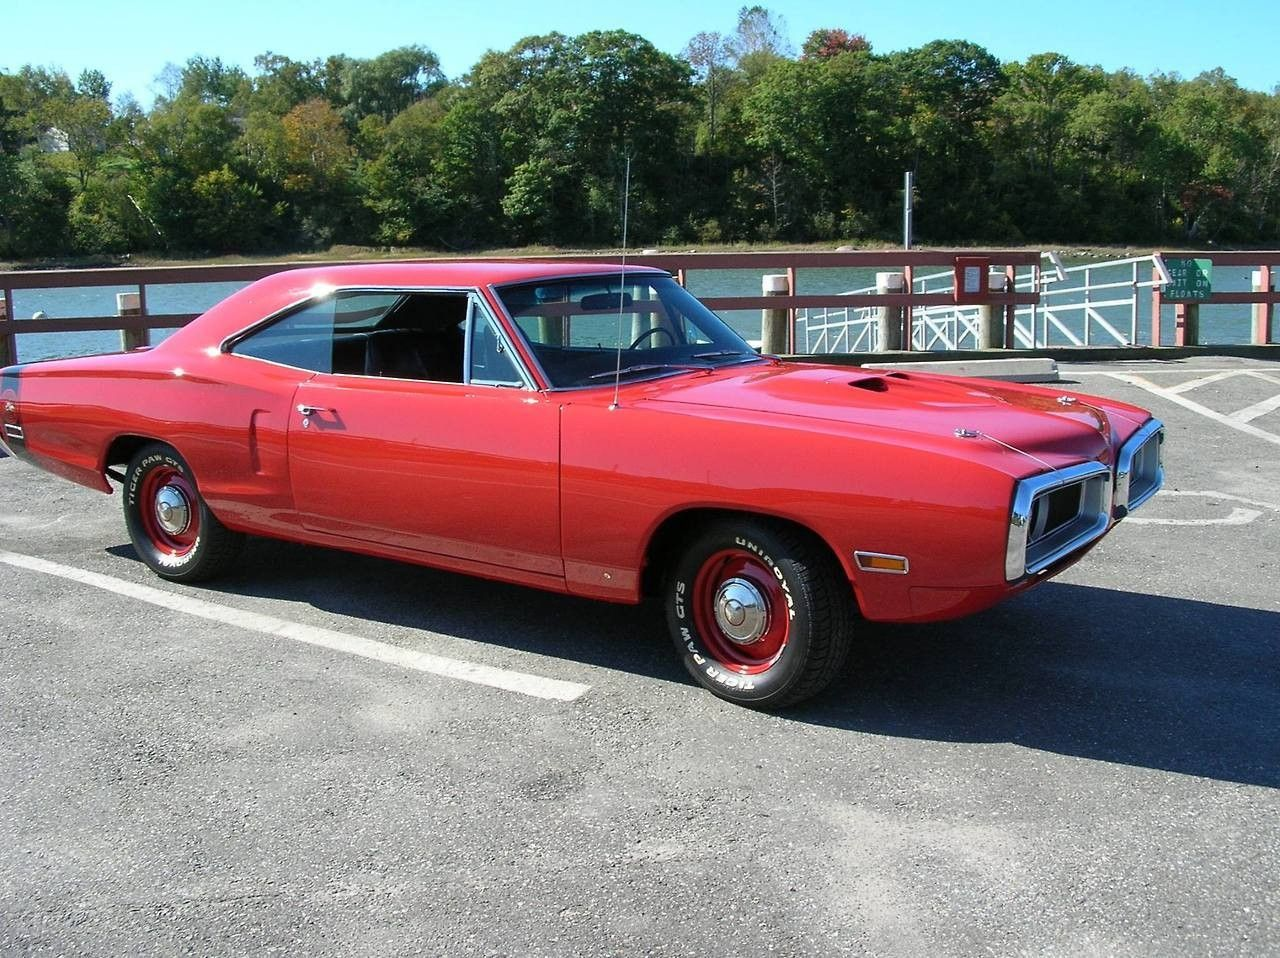 Pin by Paulie on Everything Cars | Pinterest | Mopar, Dodge coronet ...